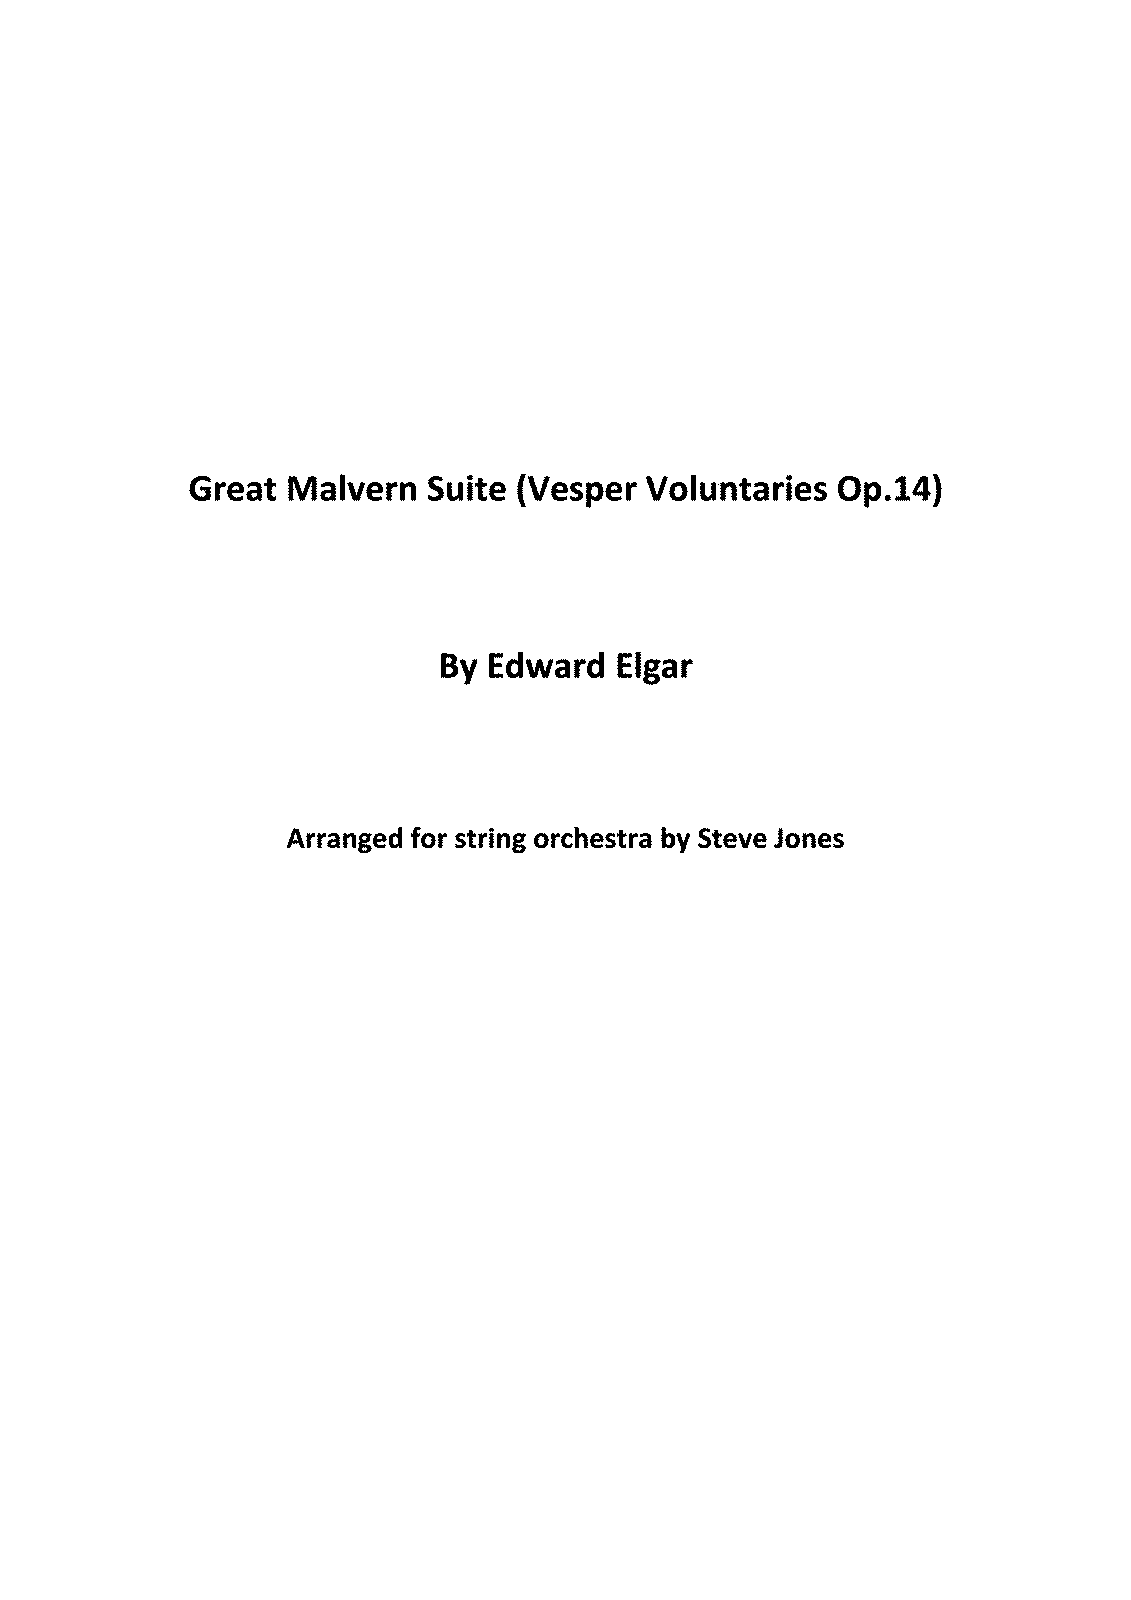 PMLP76535-Great Malvern Suite score.pdf